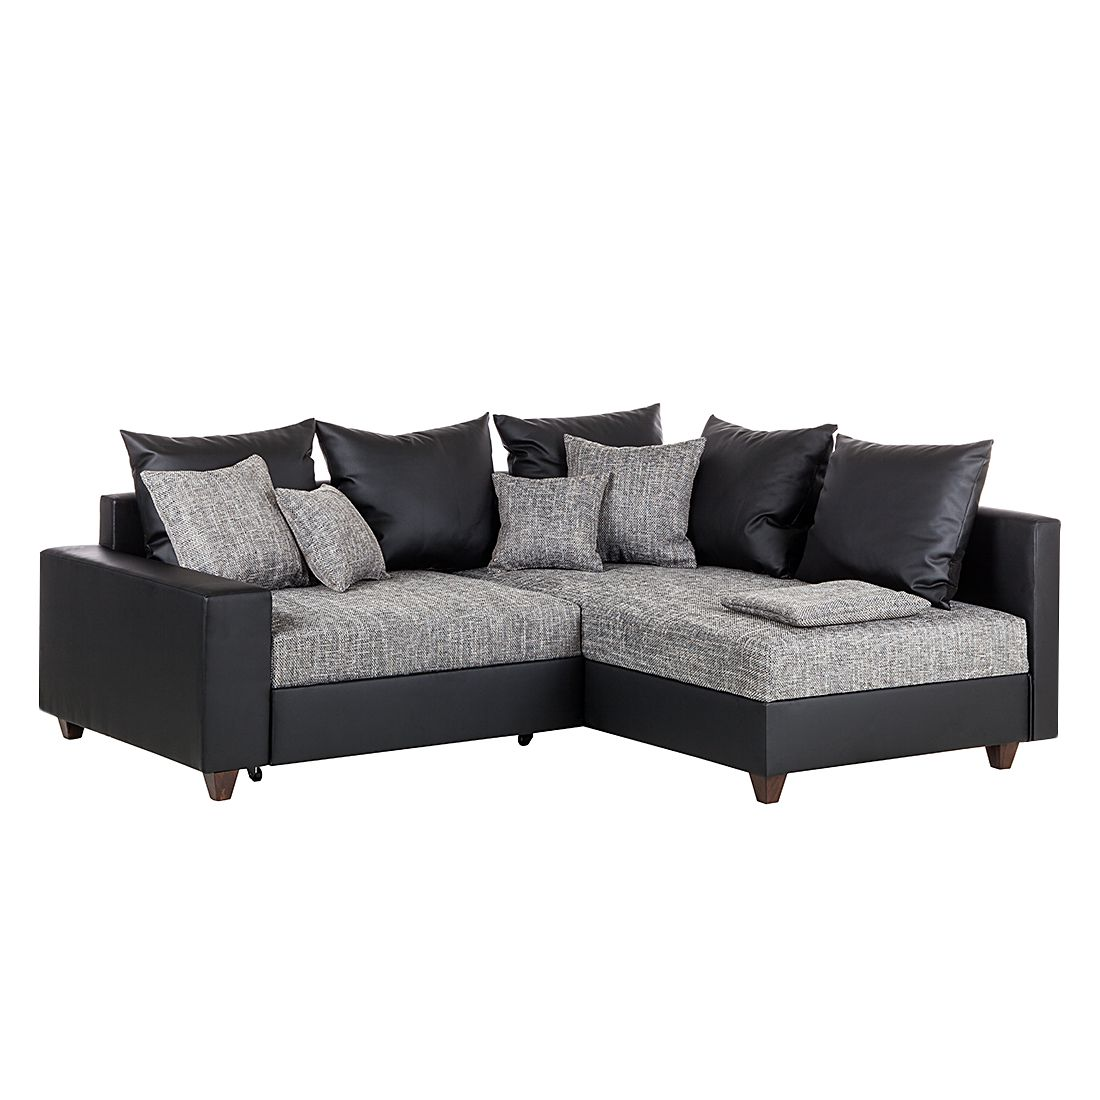 ecksofa savona mit schlaffunktion kunstleder schwarz srukturstoff grau ottomane. Black Bedroom Furniture Sets. Home Design Ideas